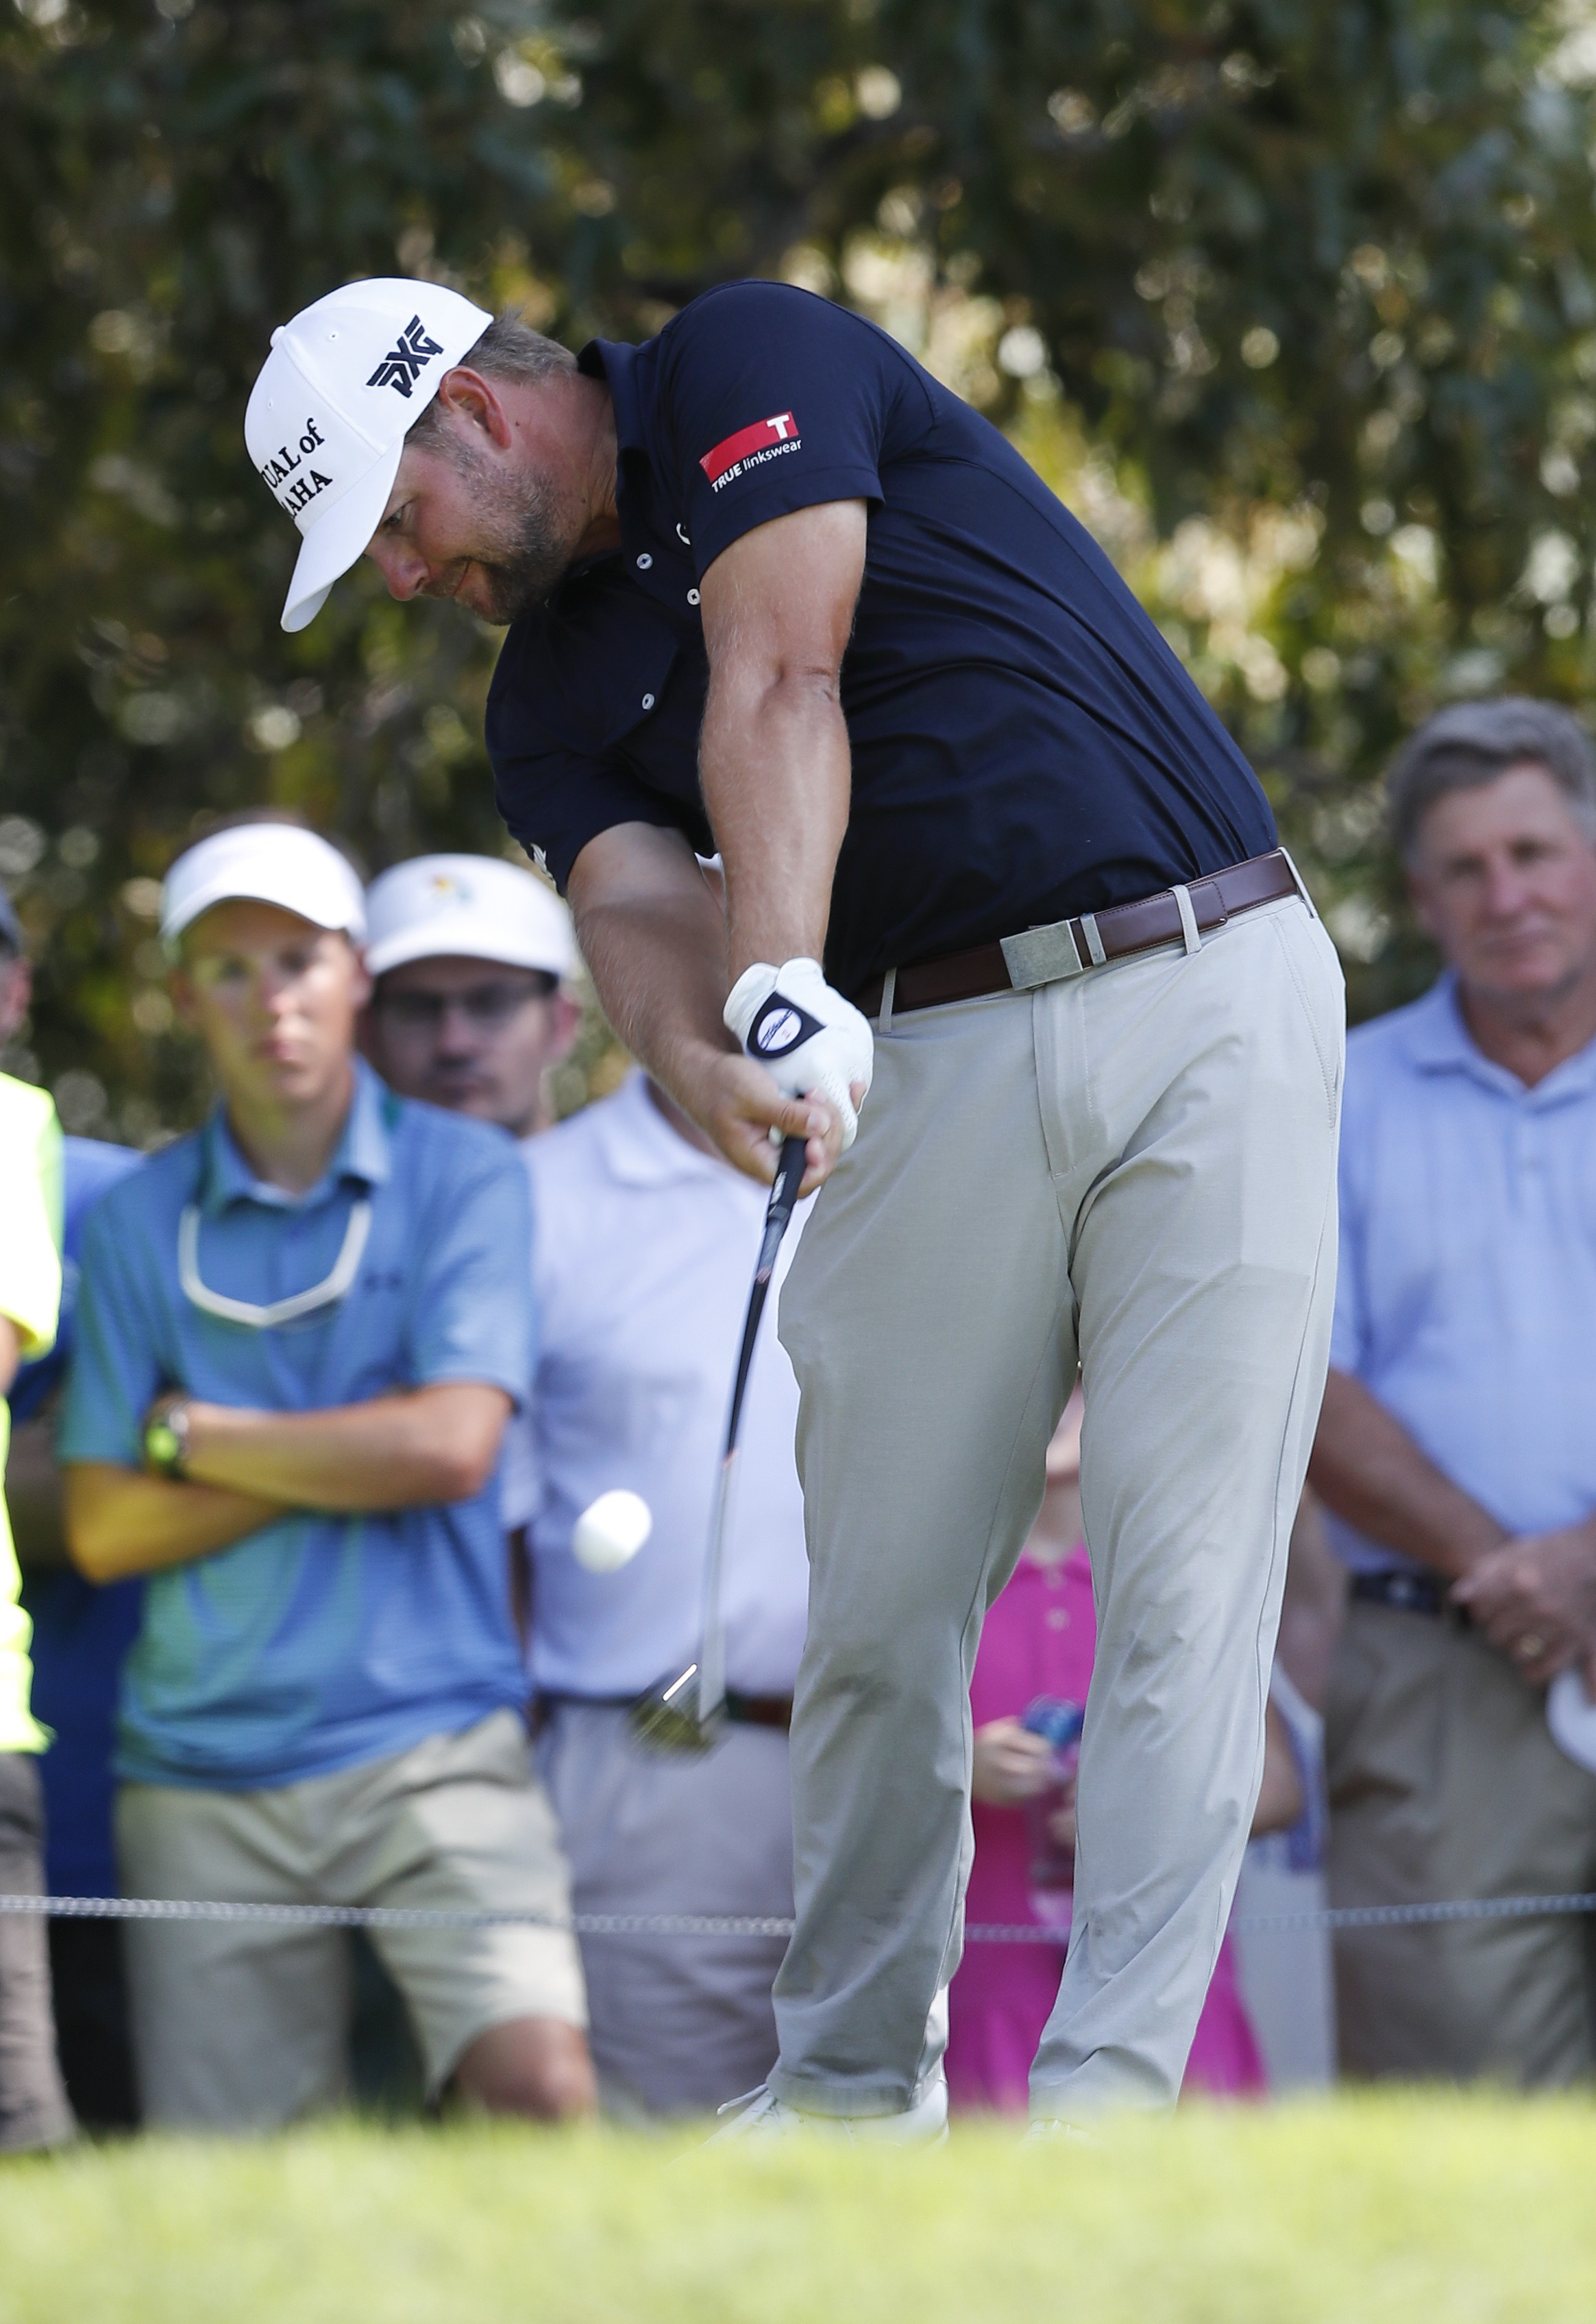 Ryan Moore hits his tee shot on the third hole during the final round of play at the Tour Championship golf tournament at East Lake Golf Club, Sunday, Sept. 25, 2016, in Atlanta. (AP Photo/John Bazemore)